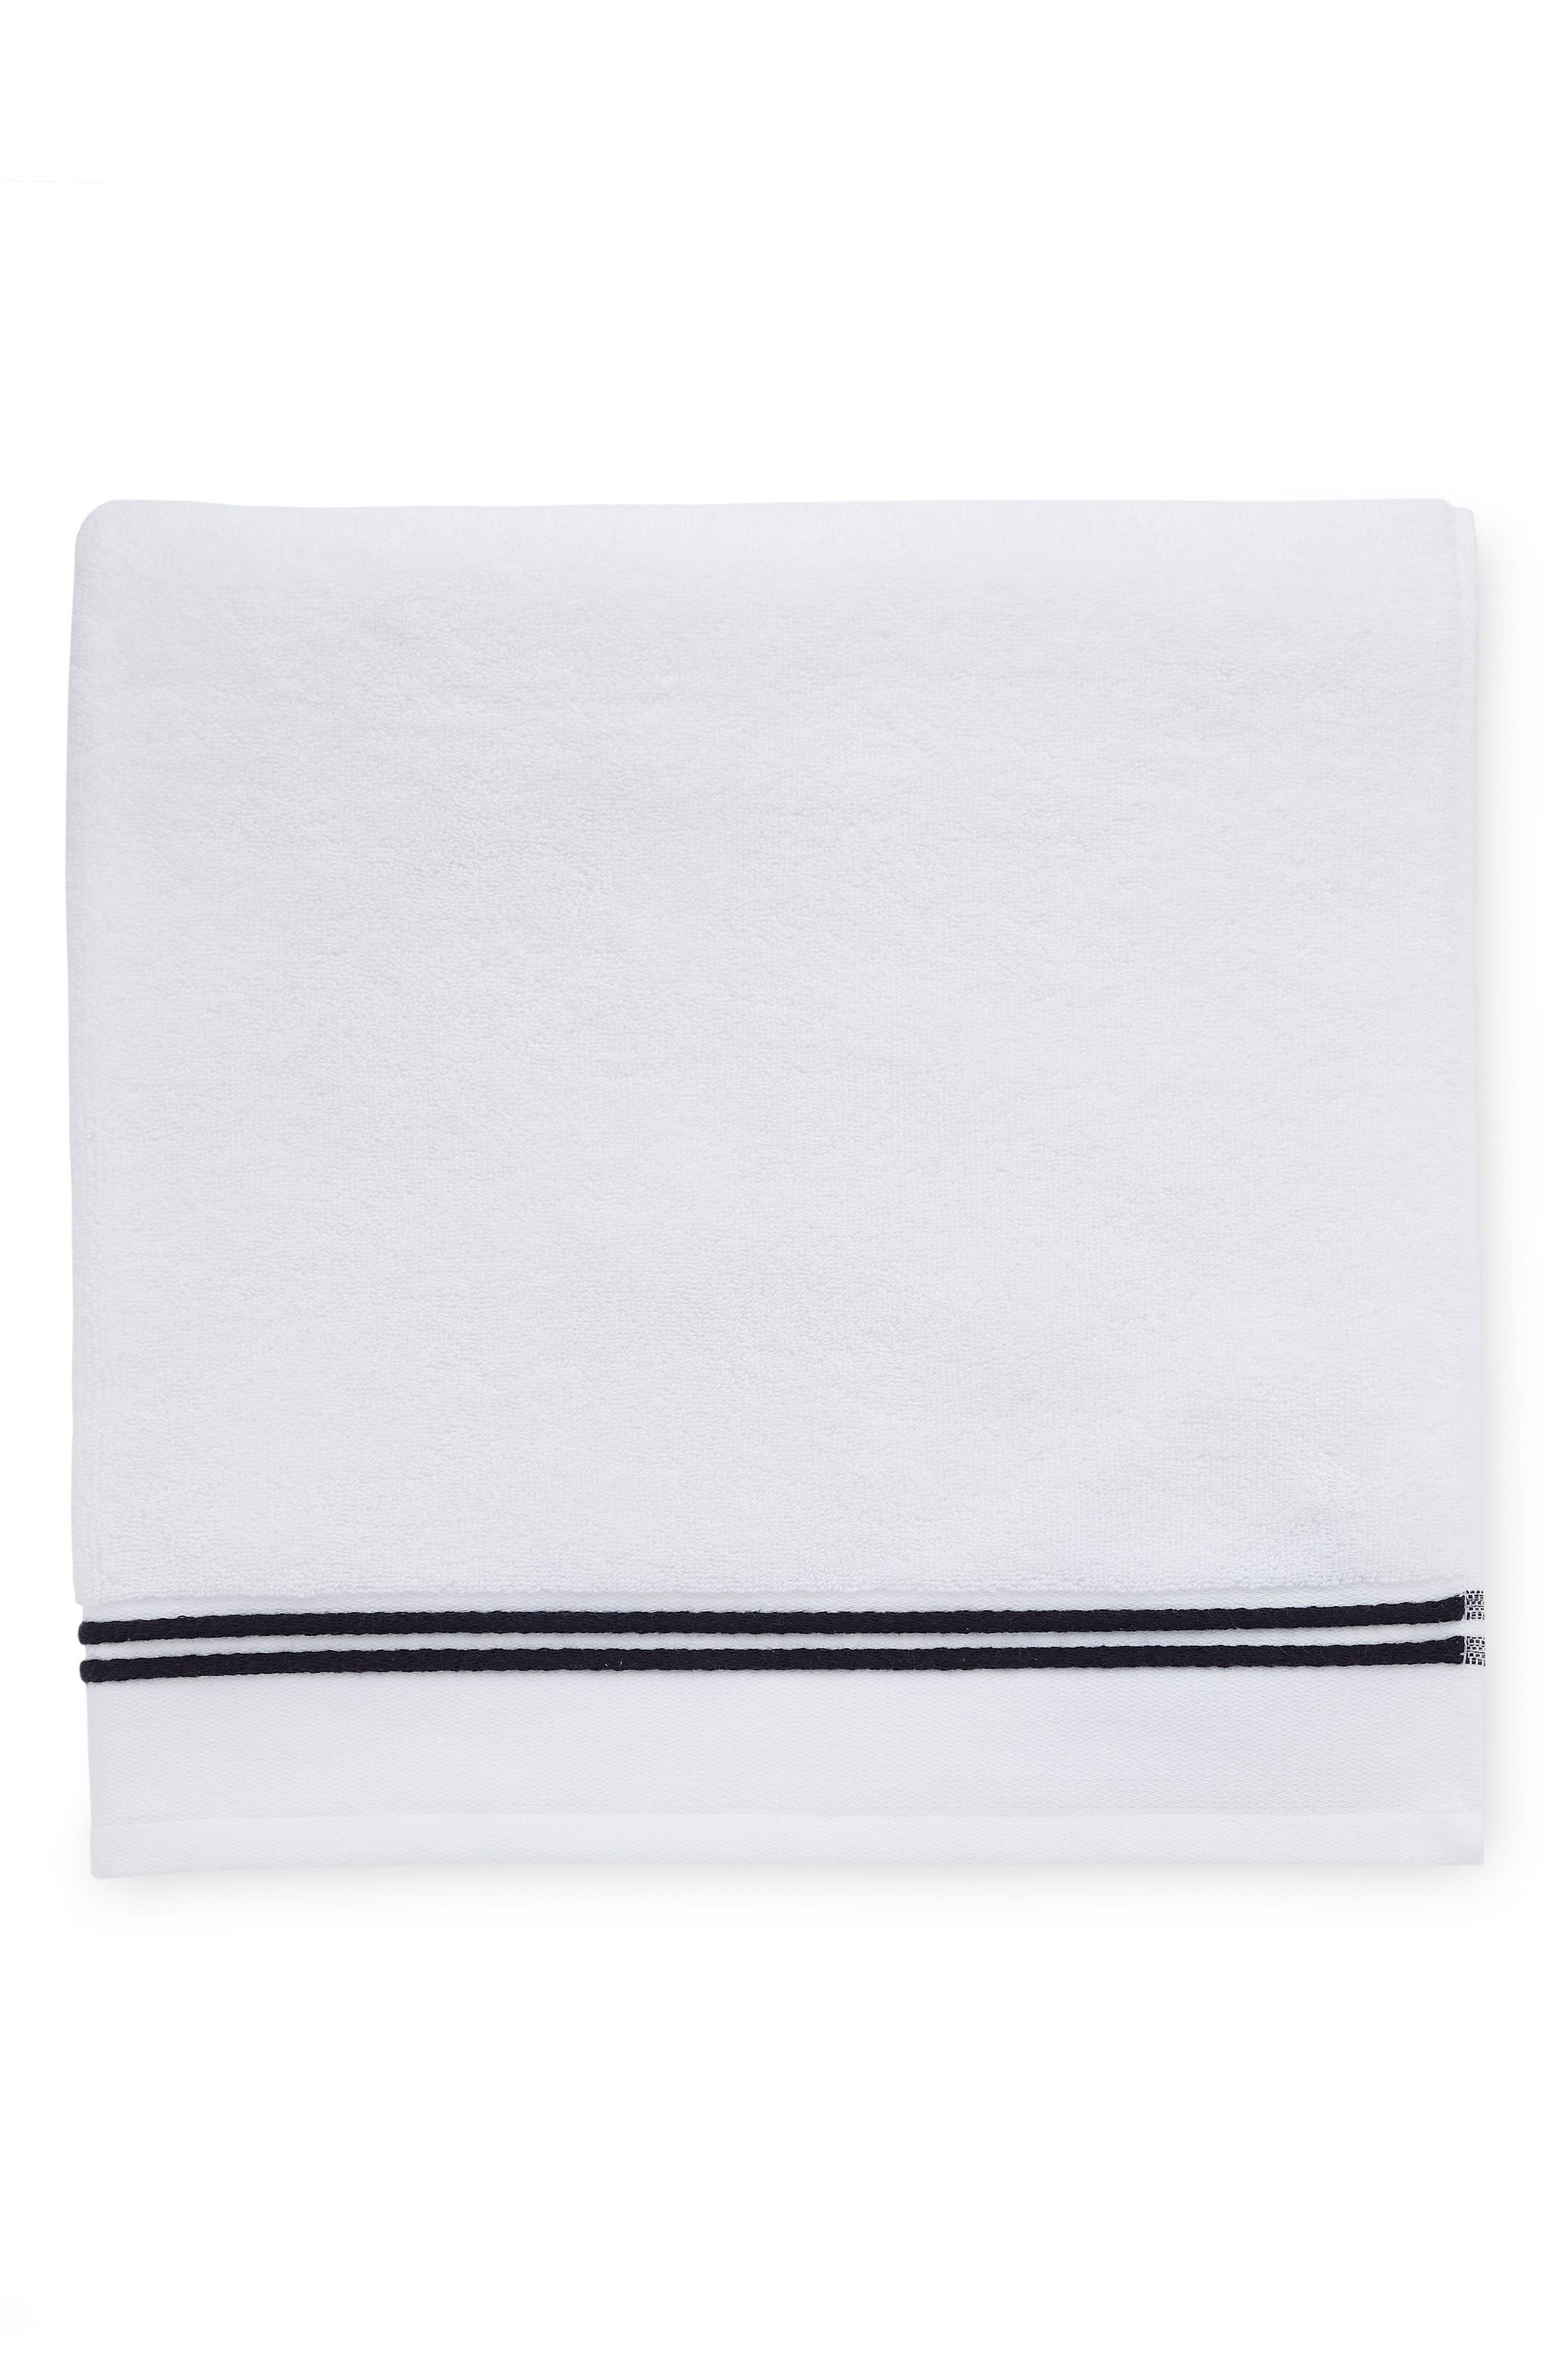 Alternate Image 1 Selected - SFERRA Aura Bath Towel